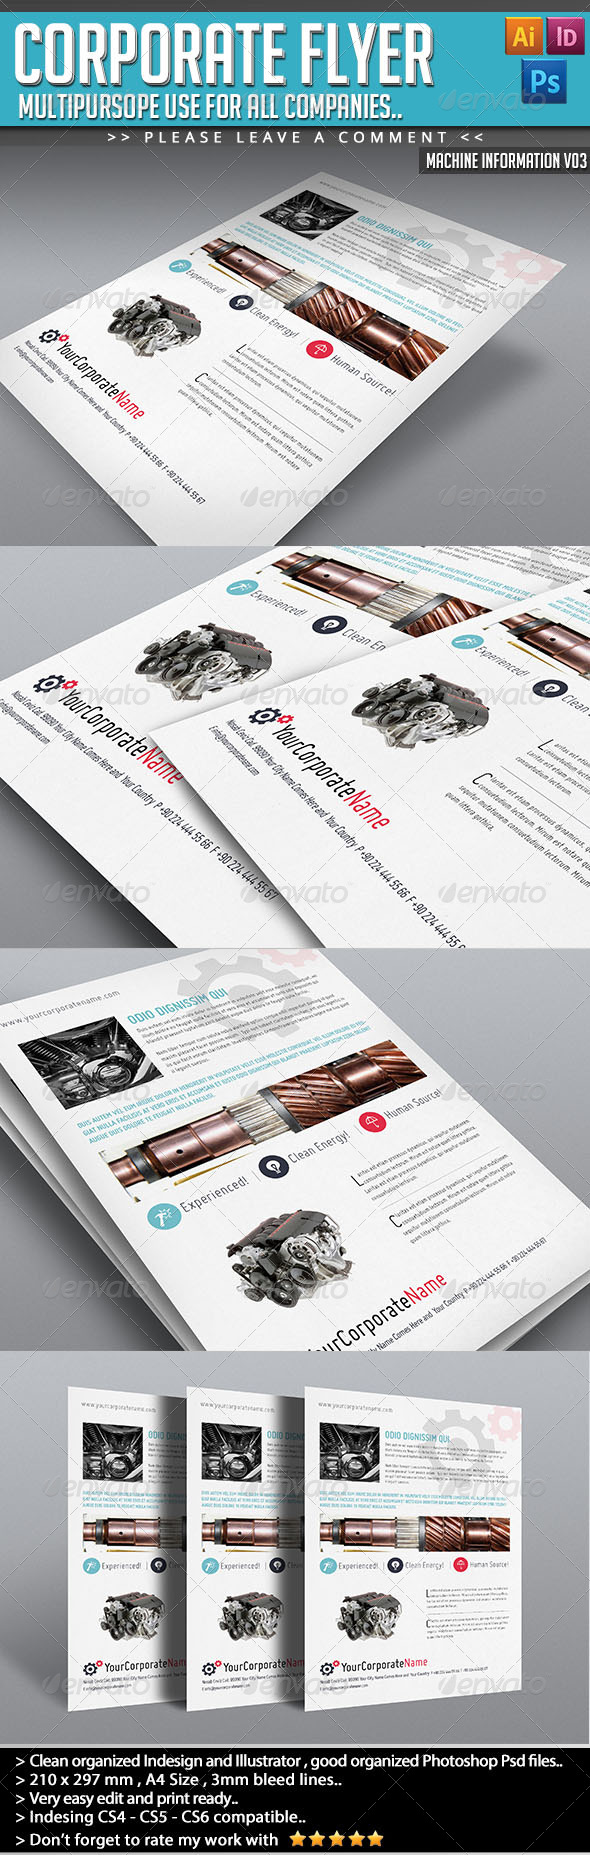 GraphicRiver Corporate Flyer Machine Informations V03 5088645